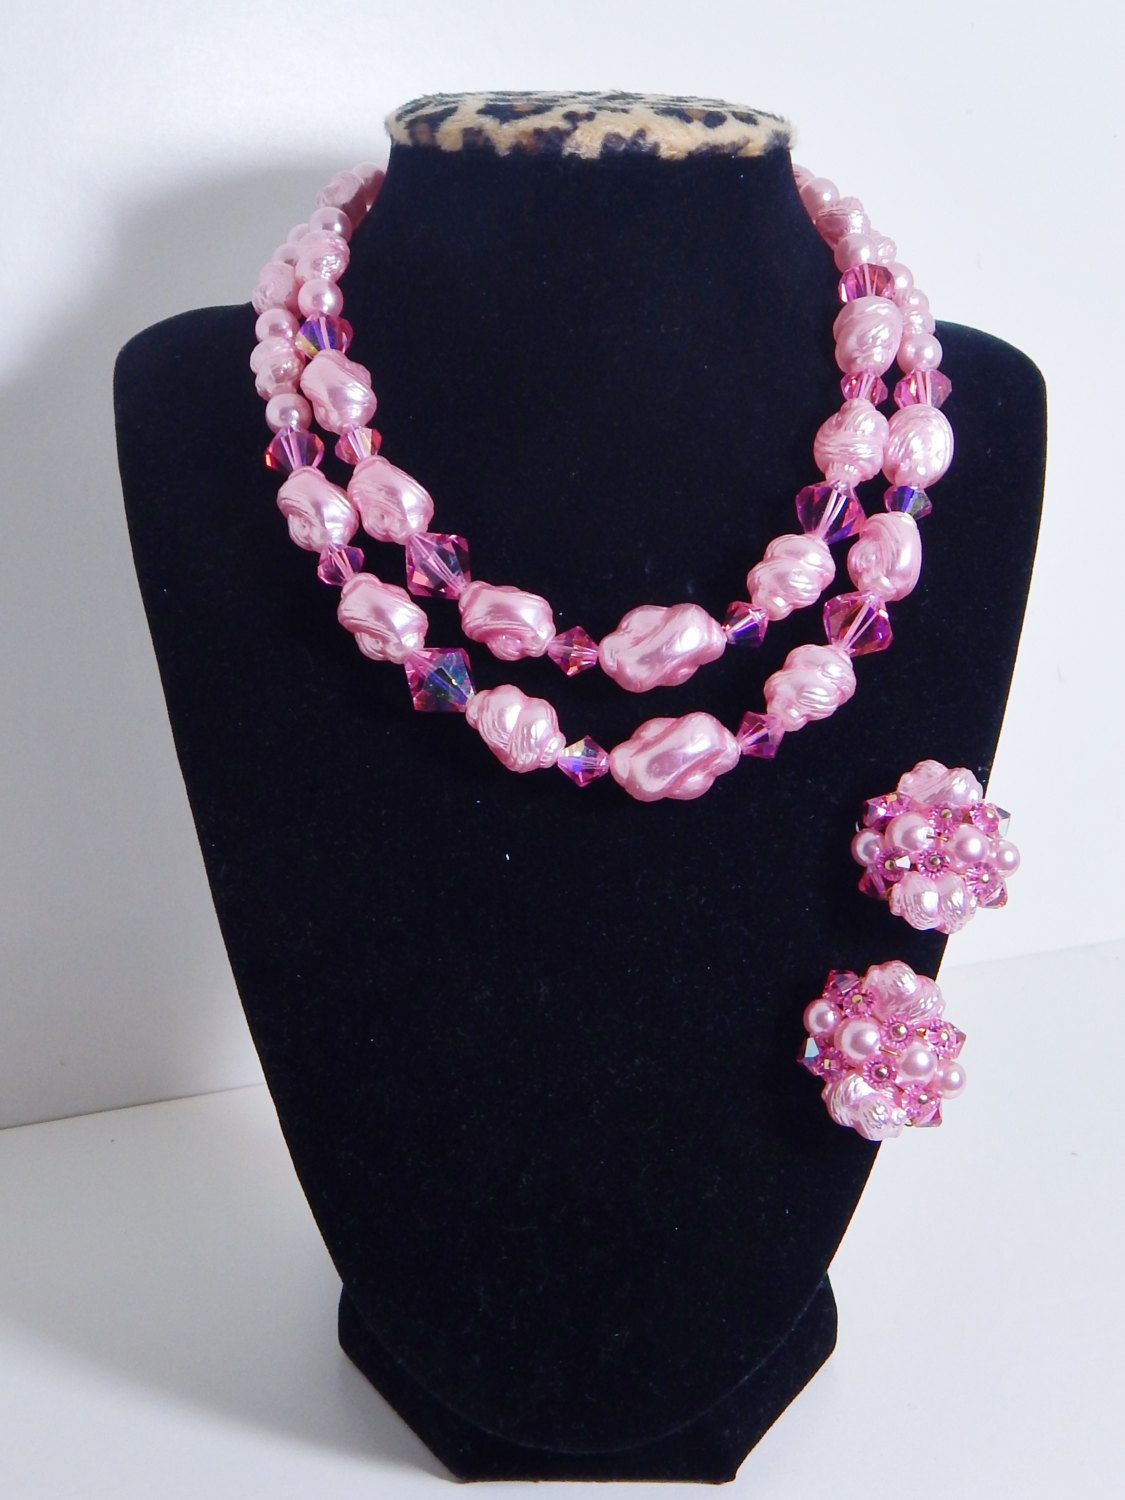 Vintage Necklace & Earring Set Pink Demi Parure Double Strand Sparkling Crystals Pink Mid Century Jewelry by OffbeatAvenue on Etsy